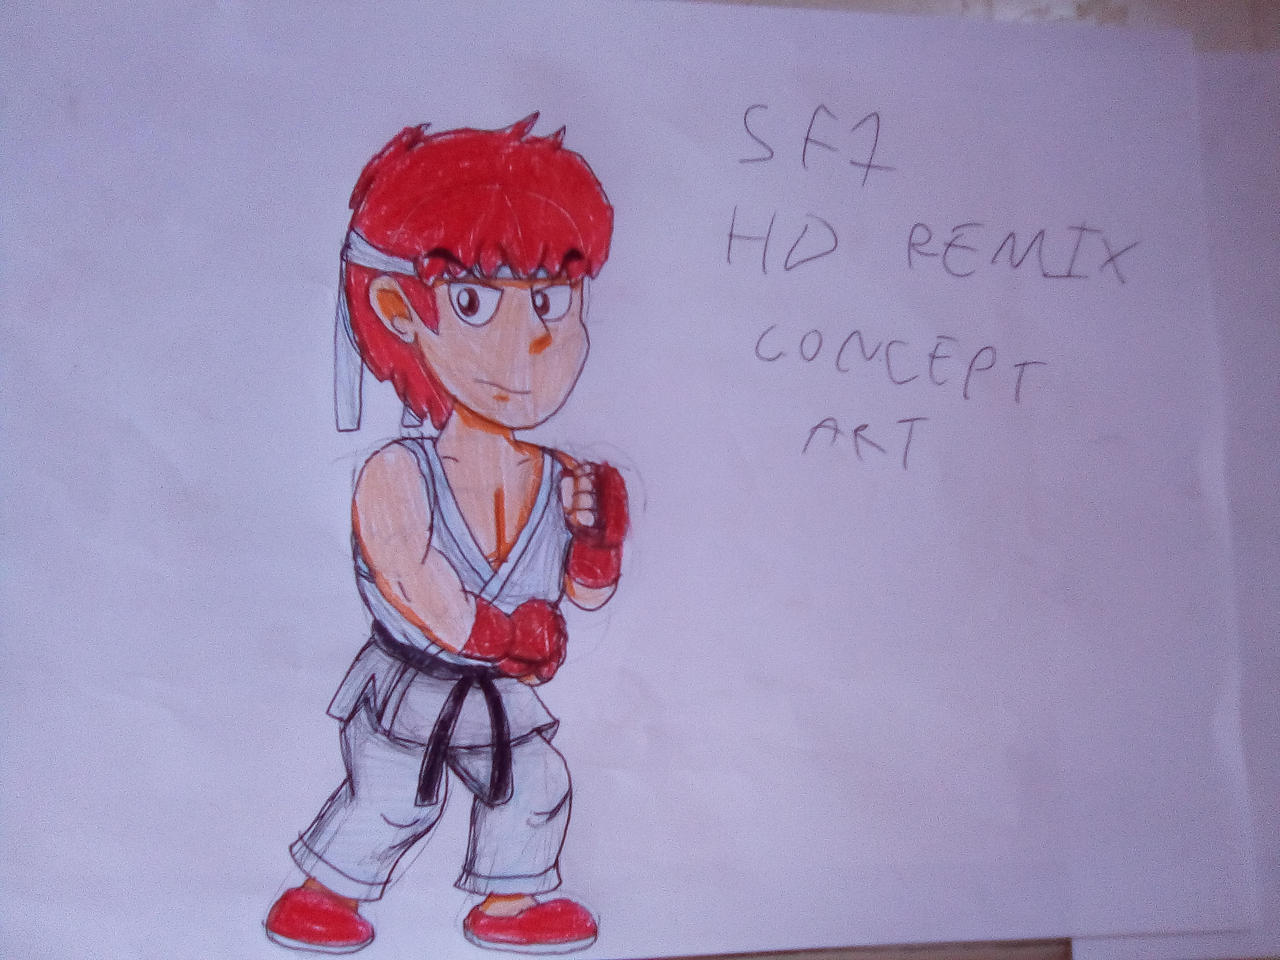 Street Fighter 1987 HD Remix - Ryu Concept Art